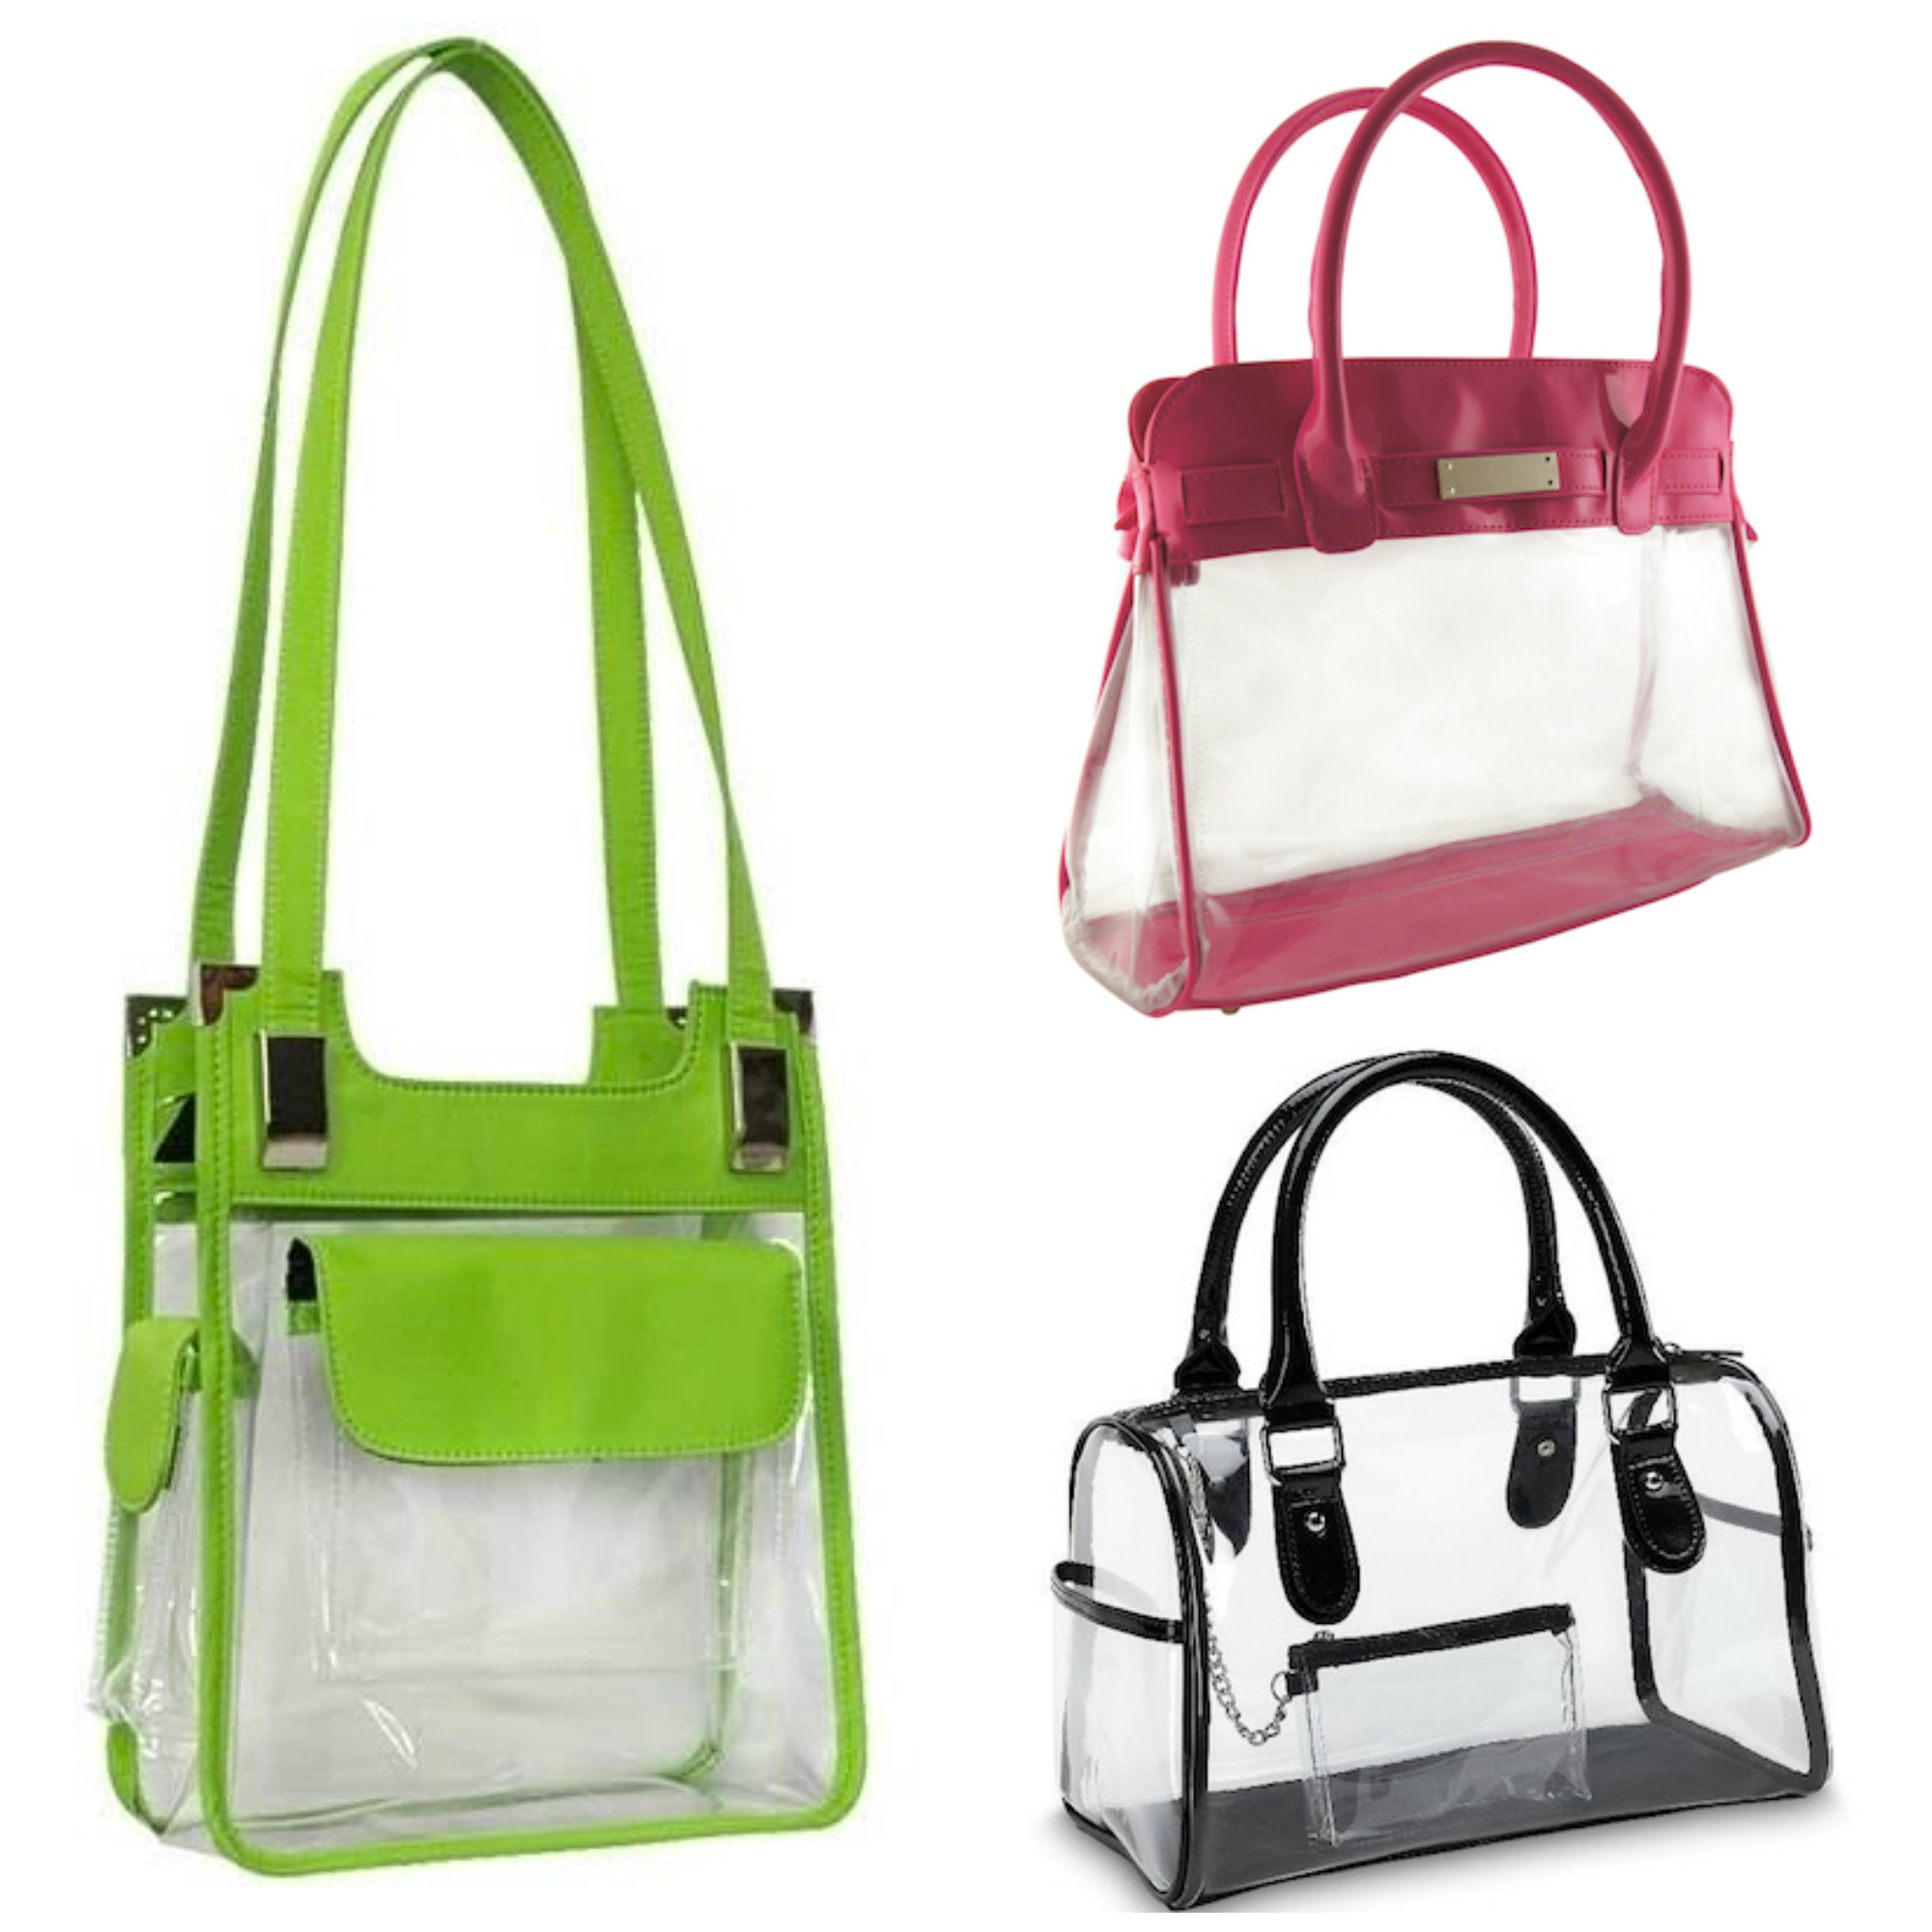 NFL All Clear Bag Policy - Fashionable Options.jpg